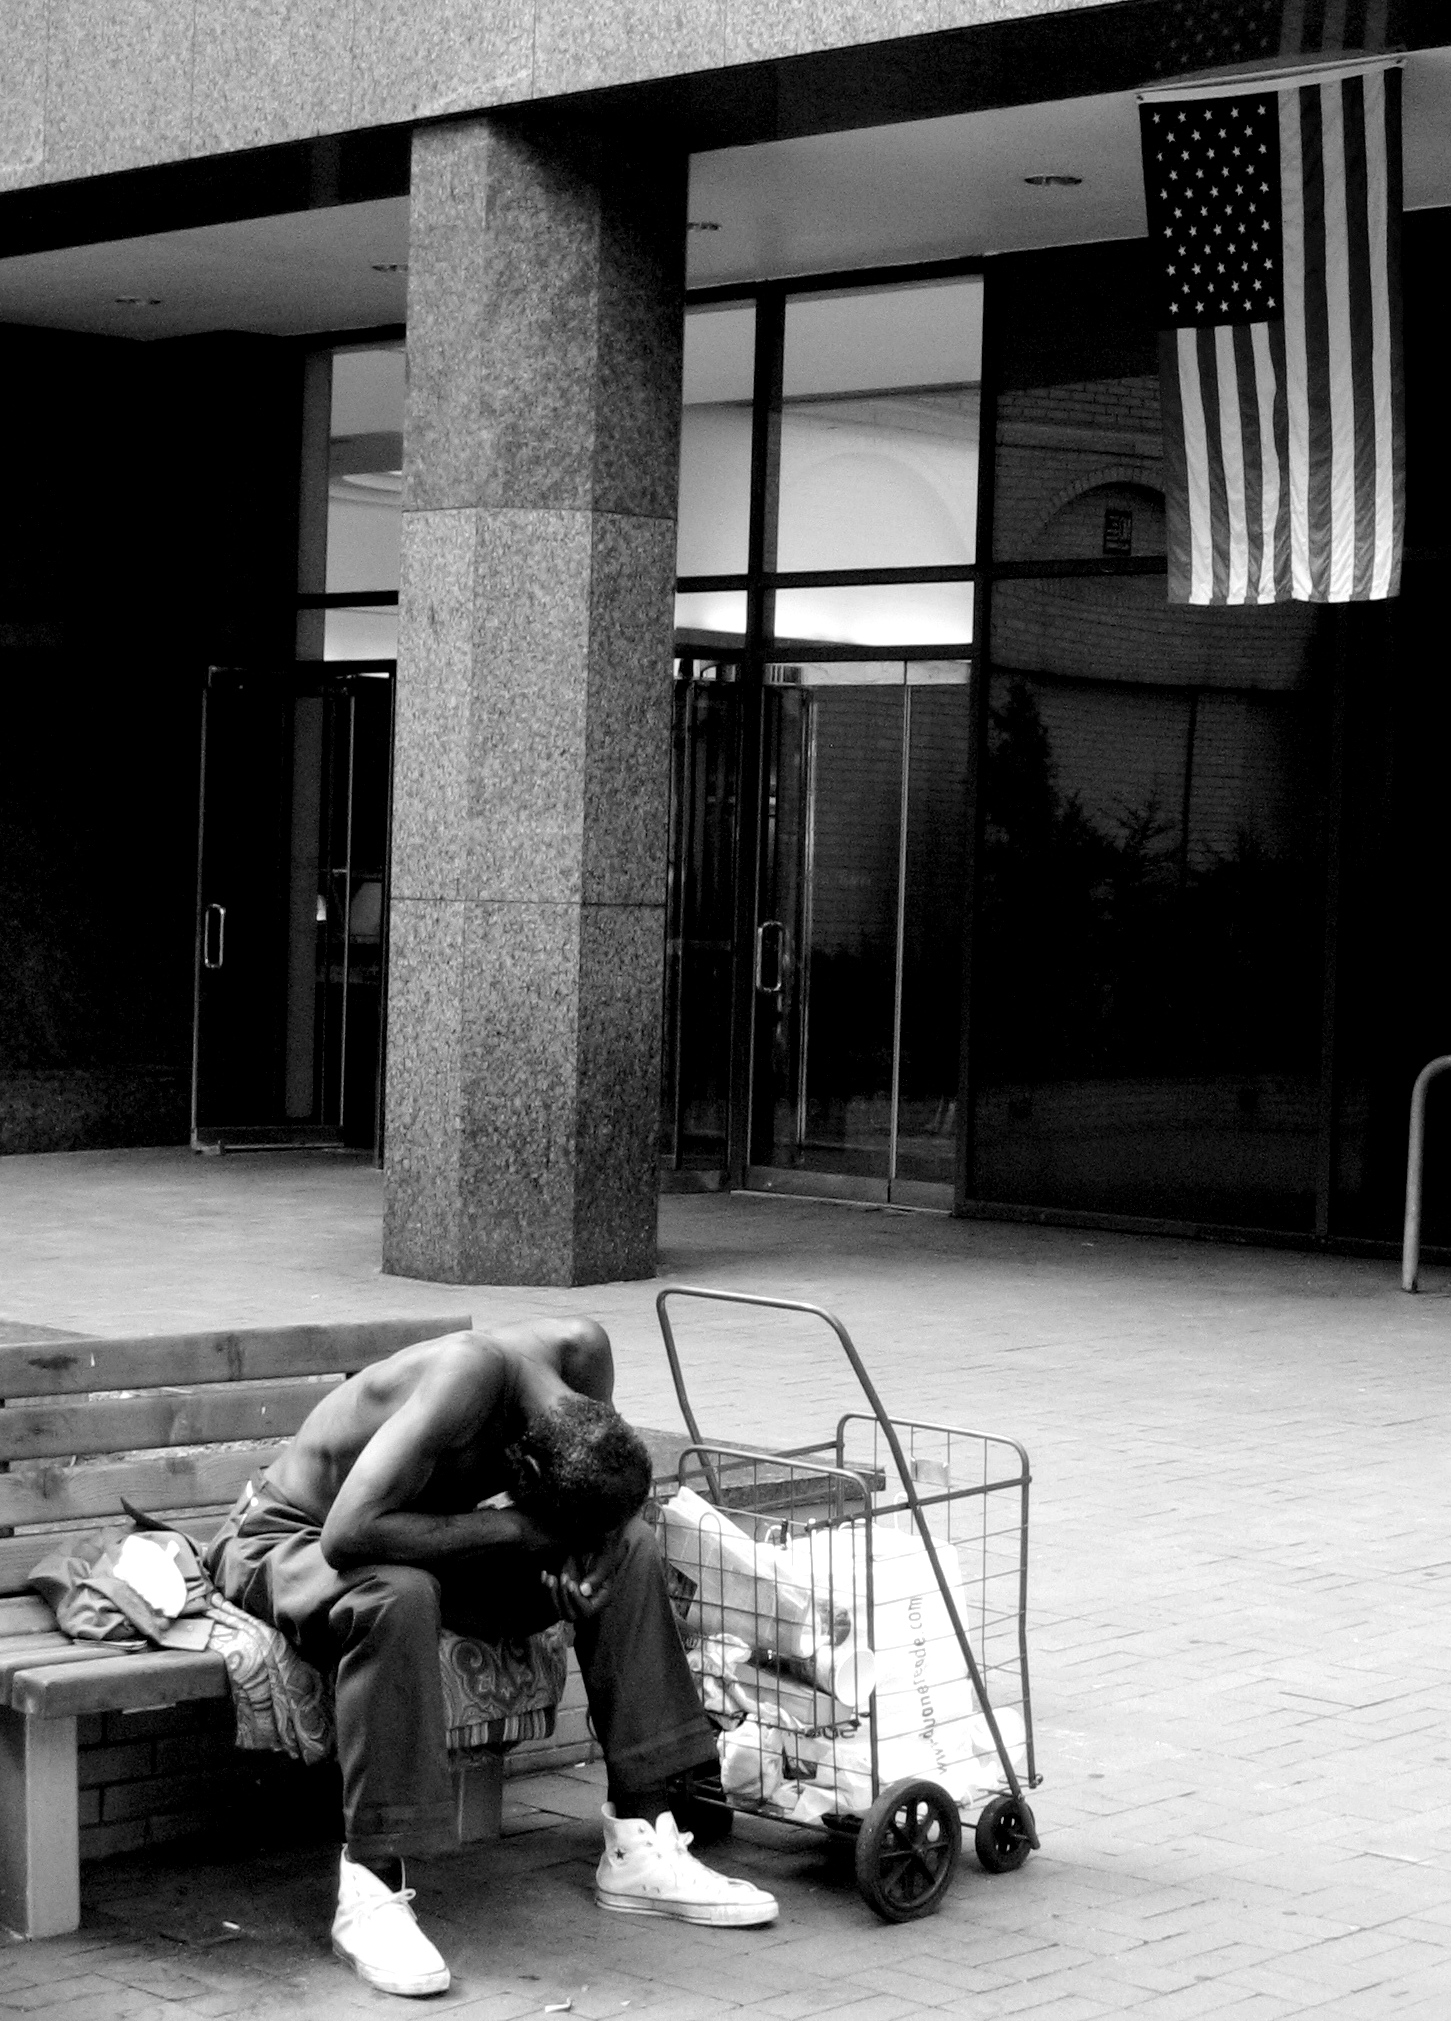 homeless epidemic in america The silent epidemic of rural homelessness  the plight of the rural homeless receives little  as lower wages in rural america are often not offset by a lower.